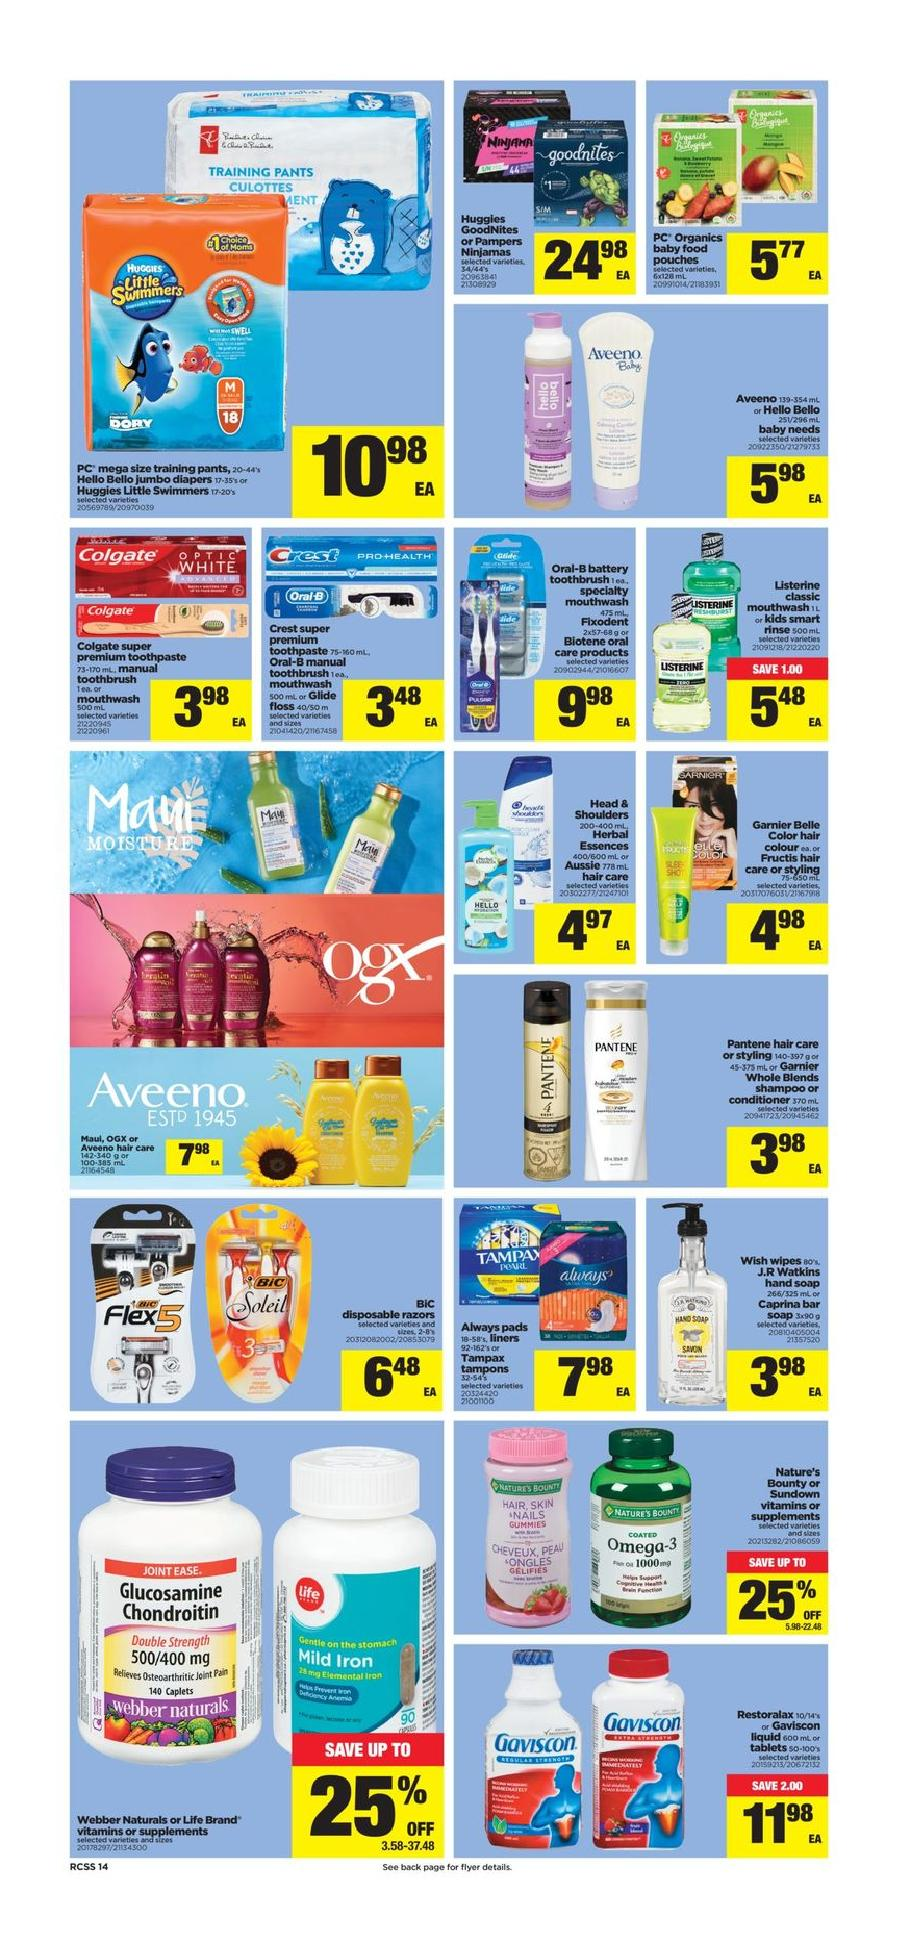 18 Superstore ON Flyer May 20 May 26 2021